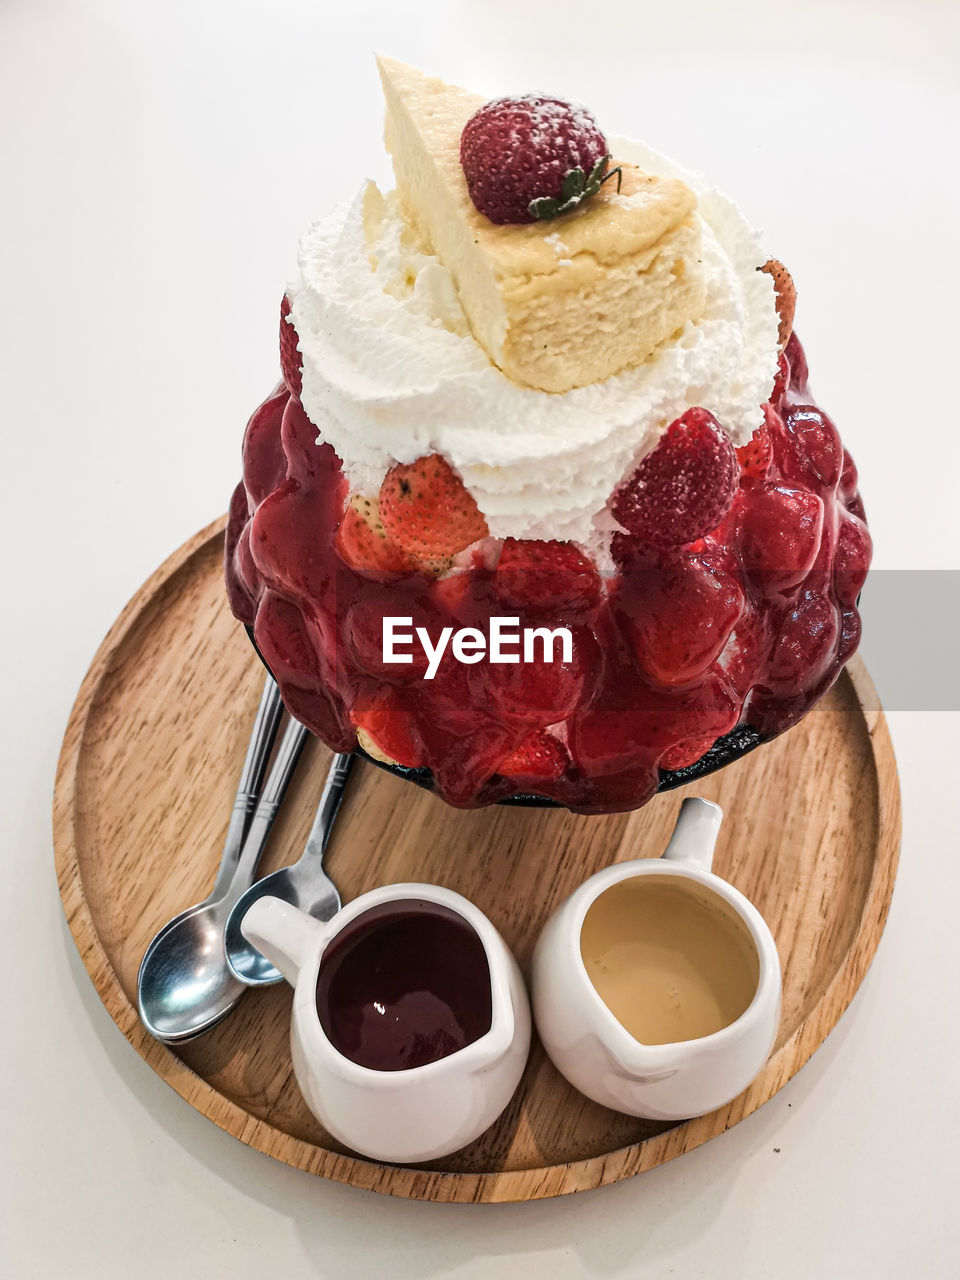 HIGH ANGLE VIEW OF ICE CREAM WITH DESSERT ON TABLE